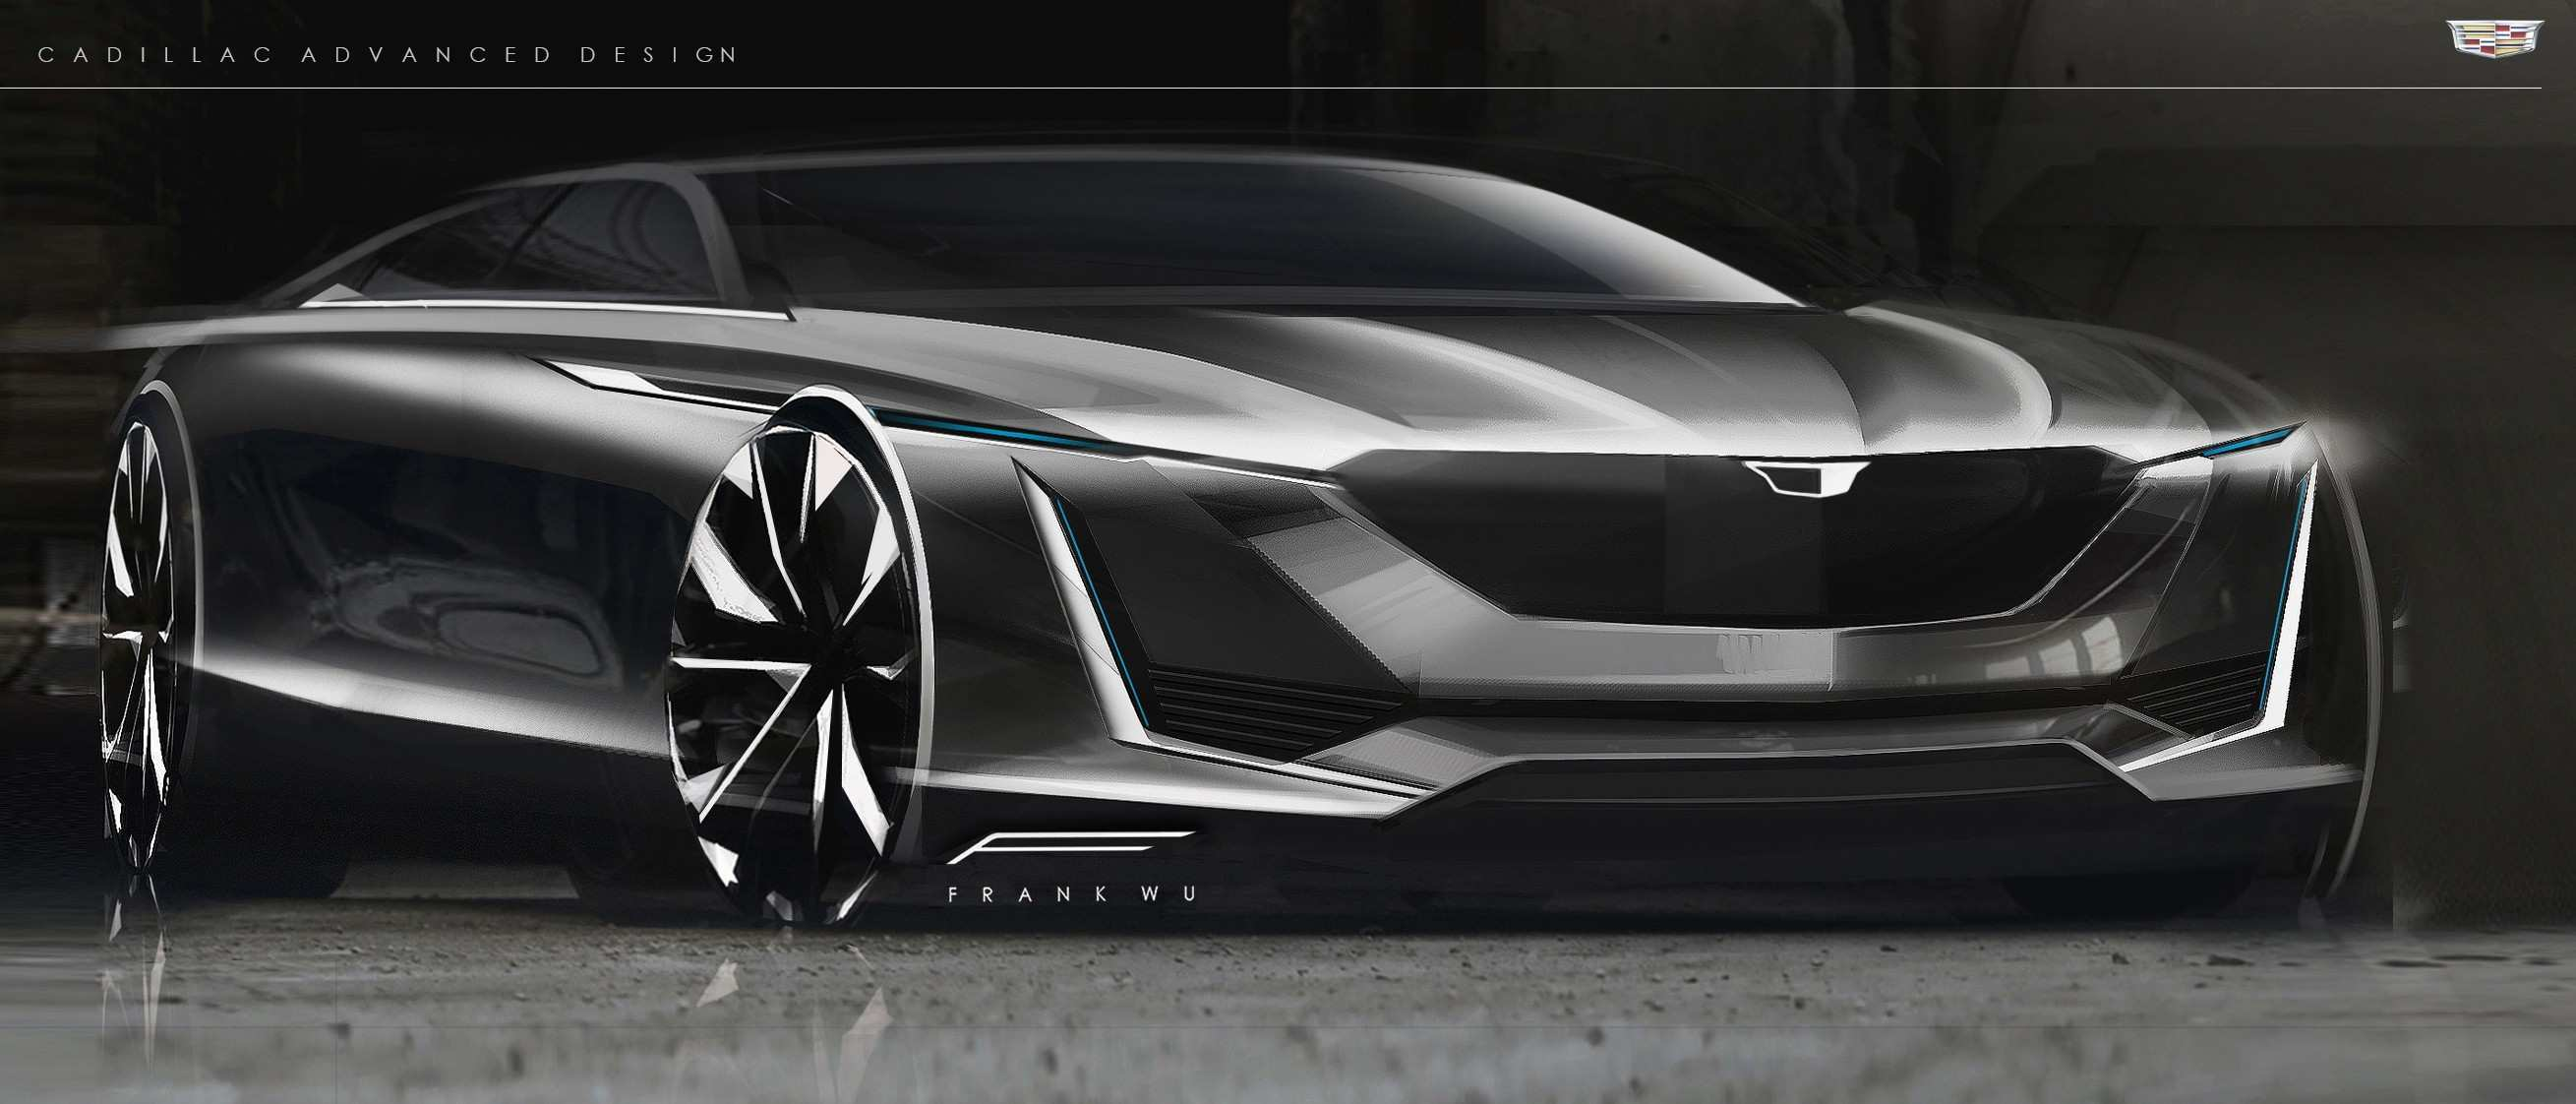 61 Best Cadillac New Cars For 2020 New Concept